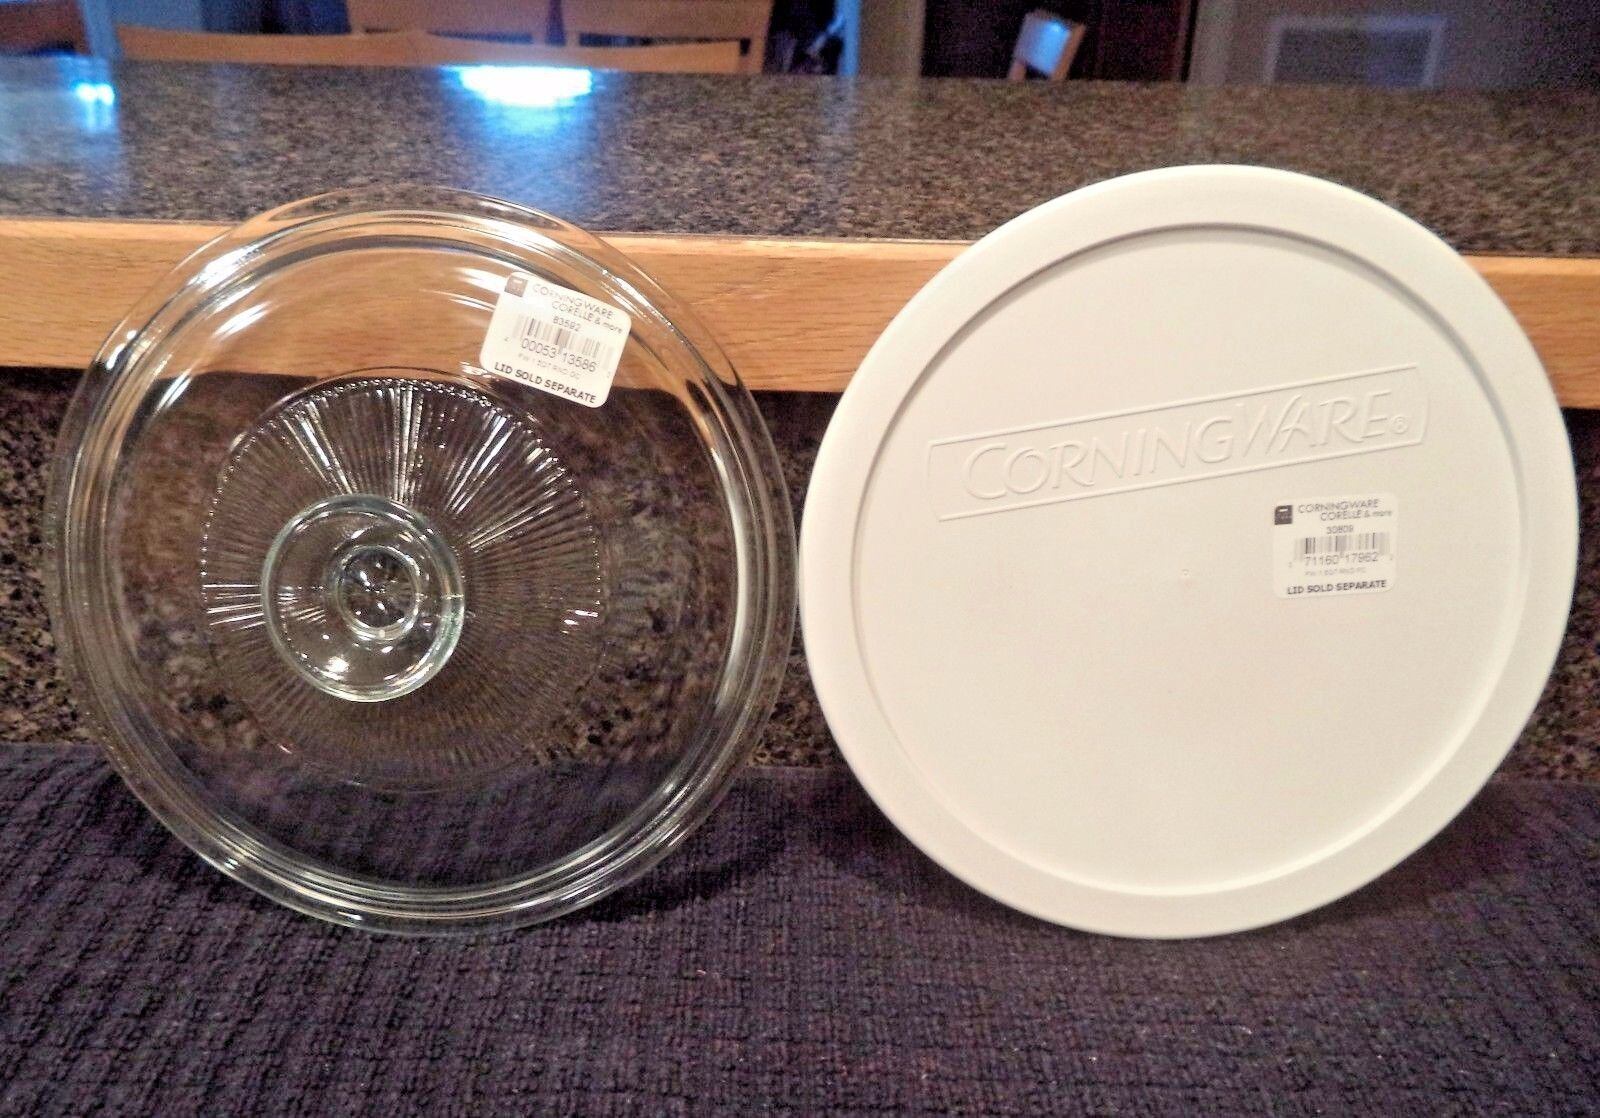 Corningware petite pan glass lids, hollie hill nude